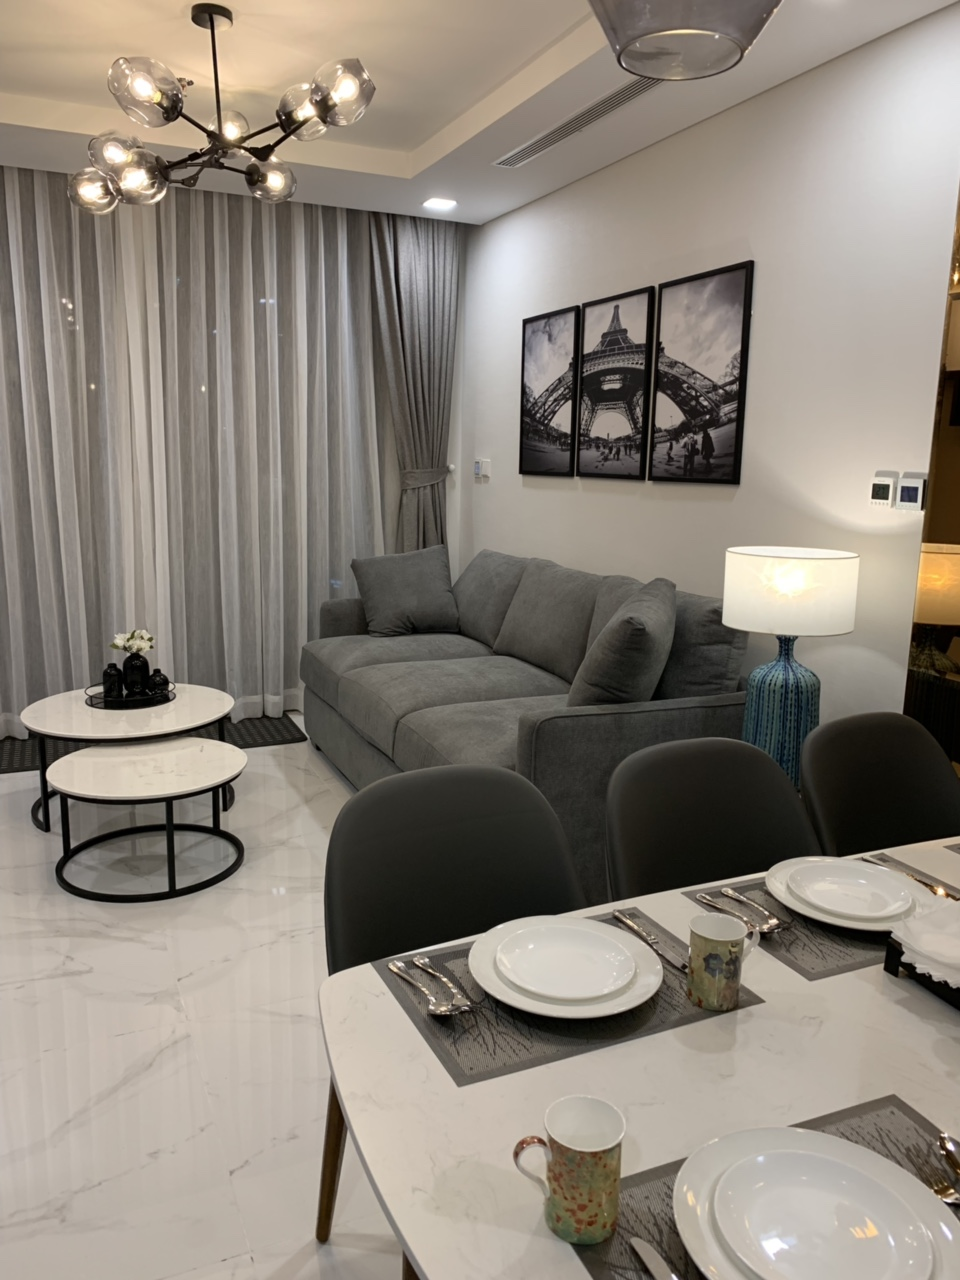 vinhomes central park apartment for rent in binh thanh district hcmc BT105L1727 (21)